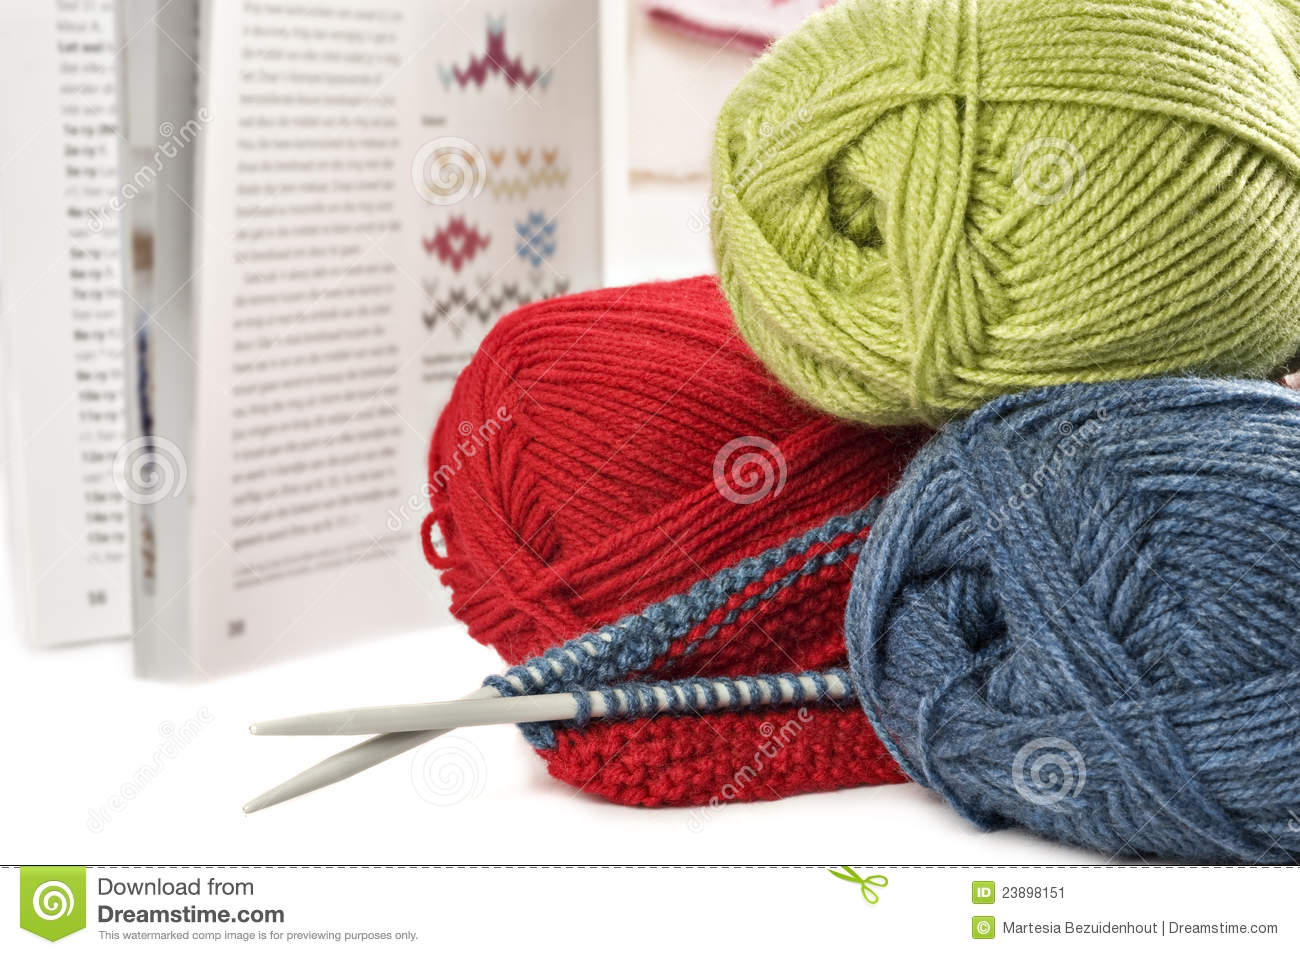 Knitting Pattern Book : Knitting Wool And Pens With Pattern Book Stock Image - Image: 23898151